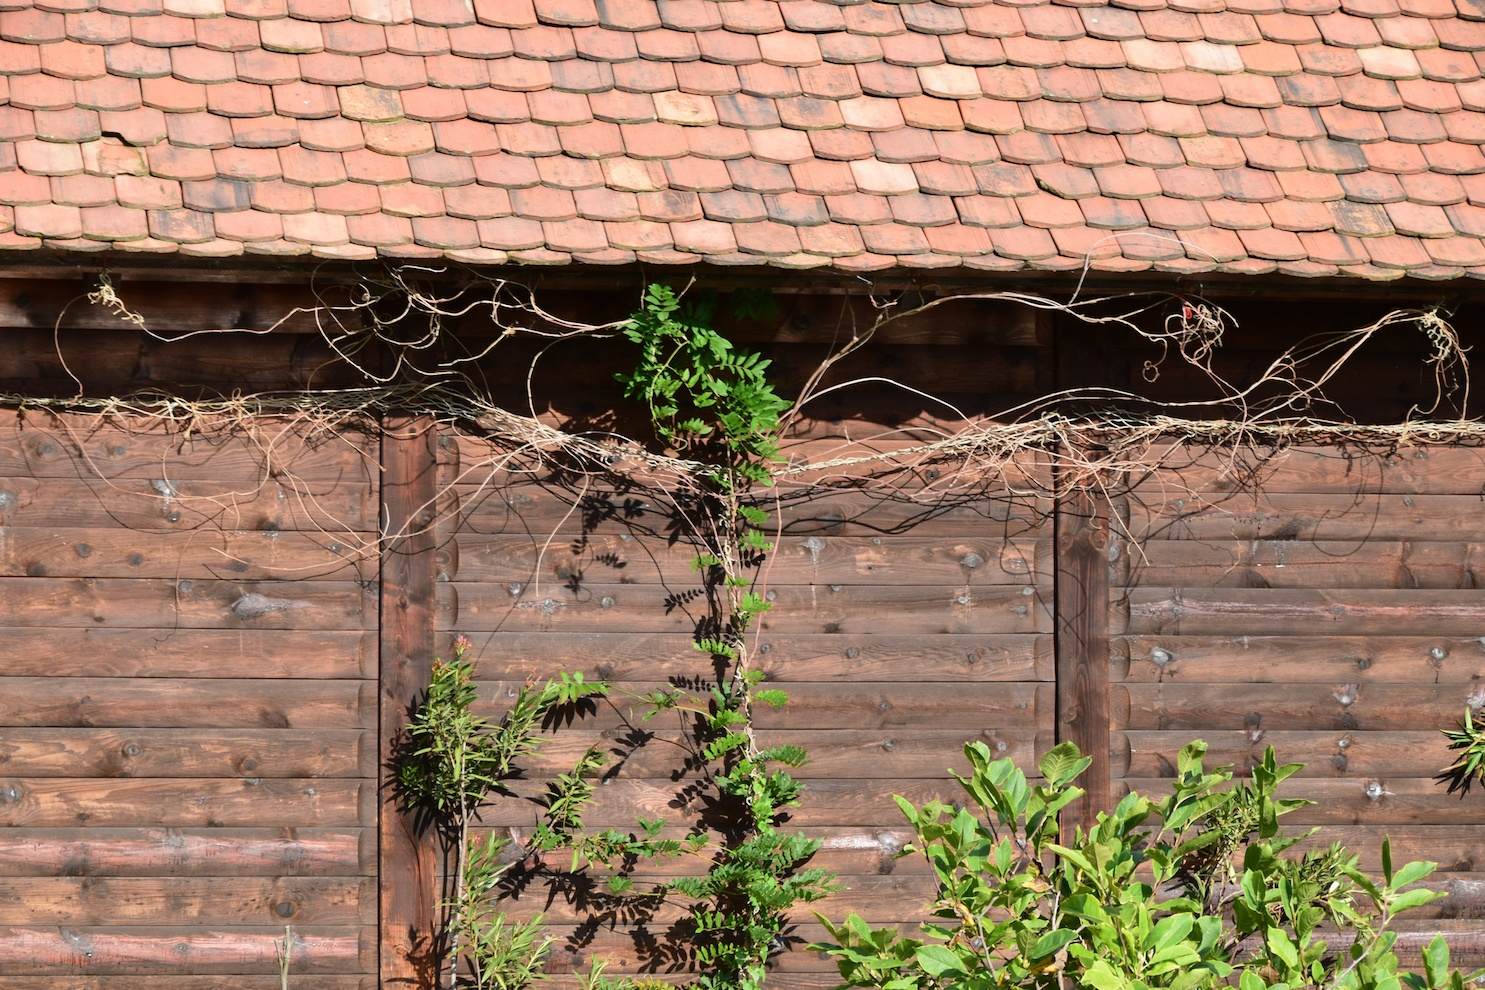 Surprising yard features that hgtv says will keep burglars away from your home page 2 - How to keep thieves away from your home ...